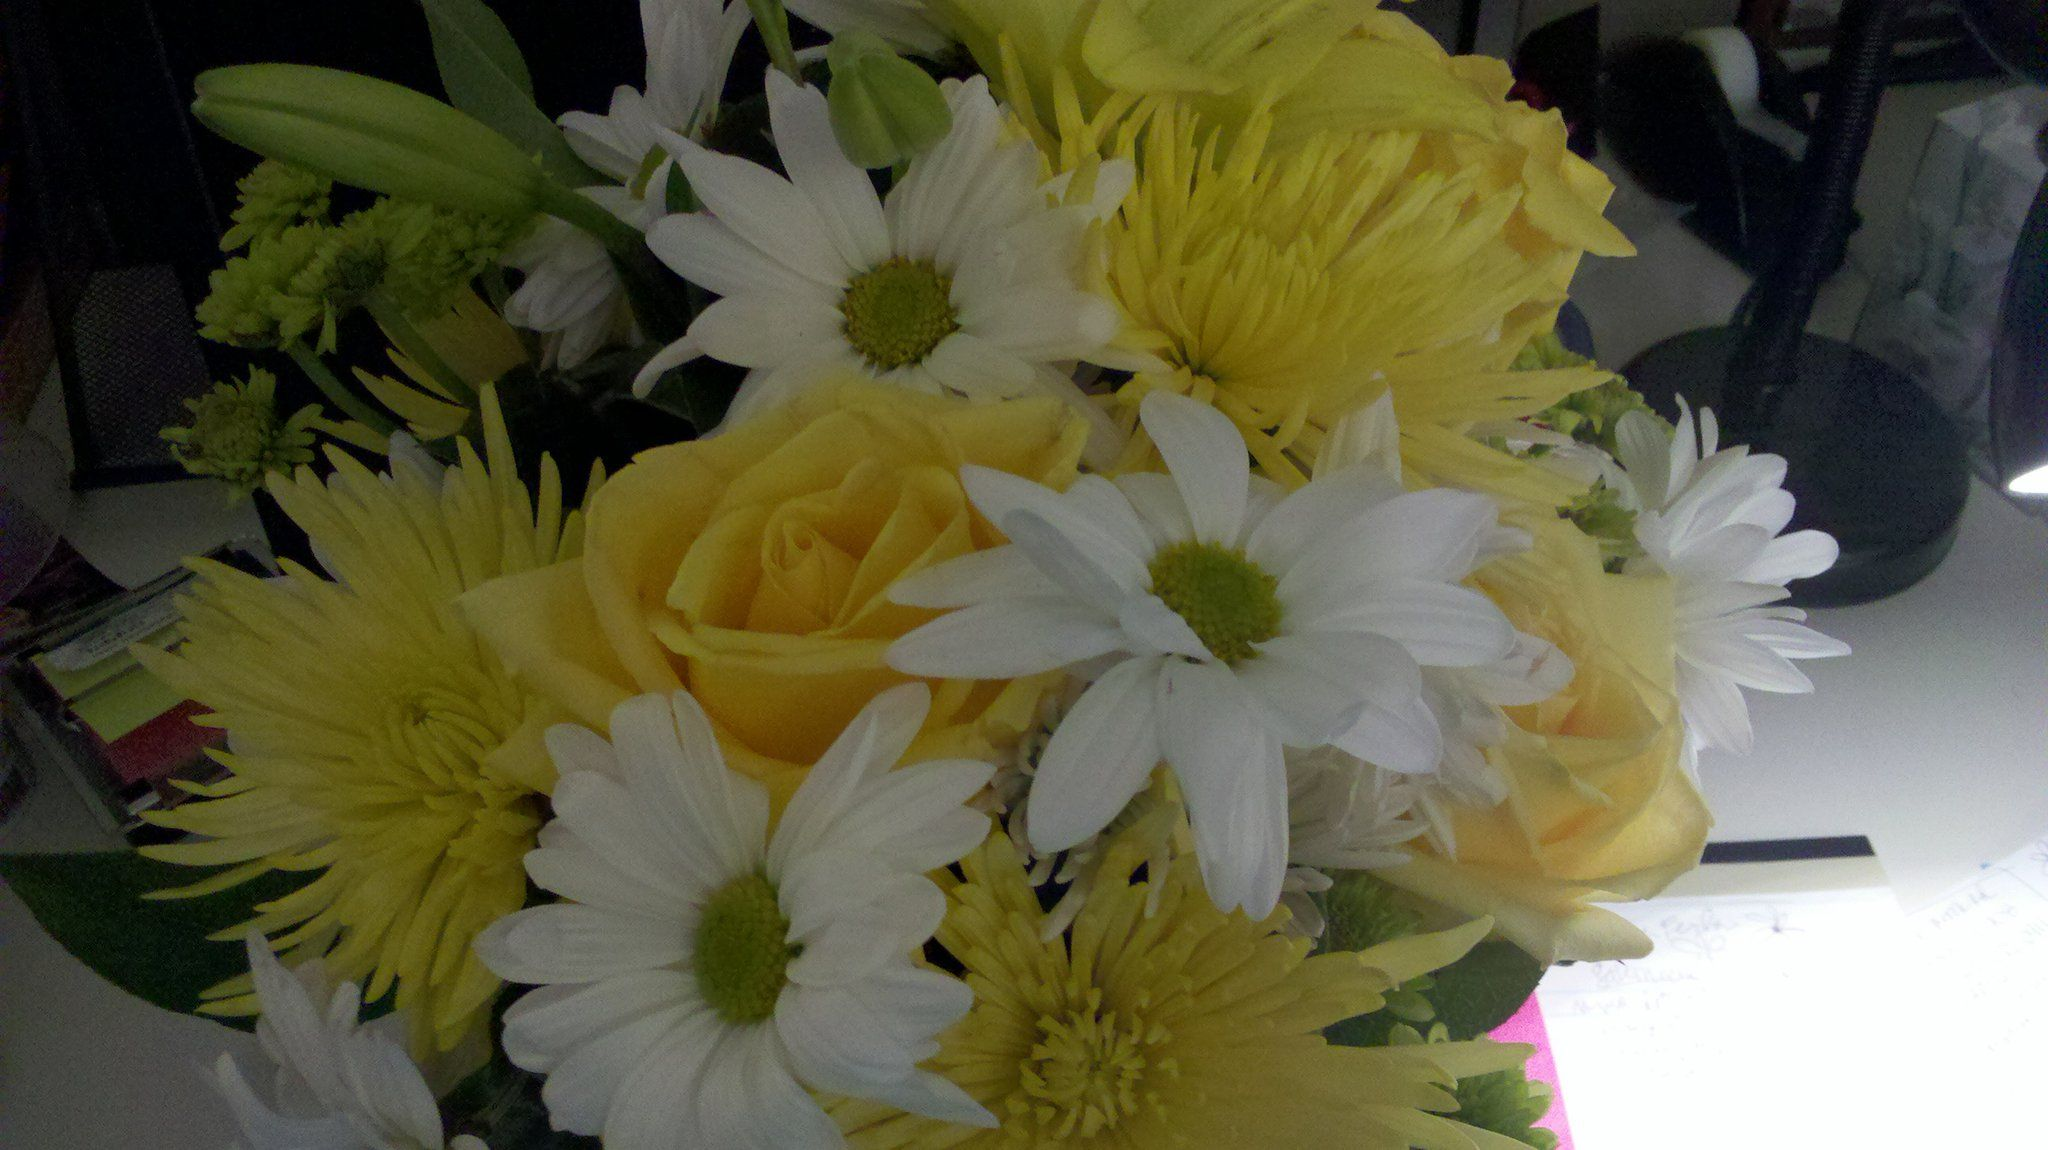 Daisies delivered to me from my mom warm fuzzies daisy